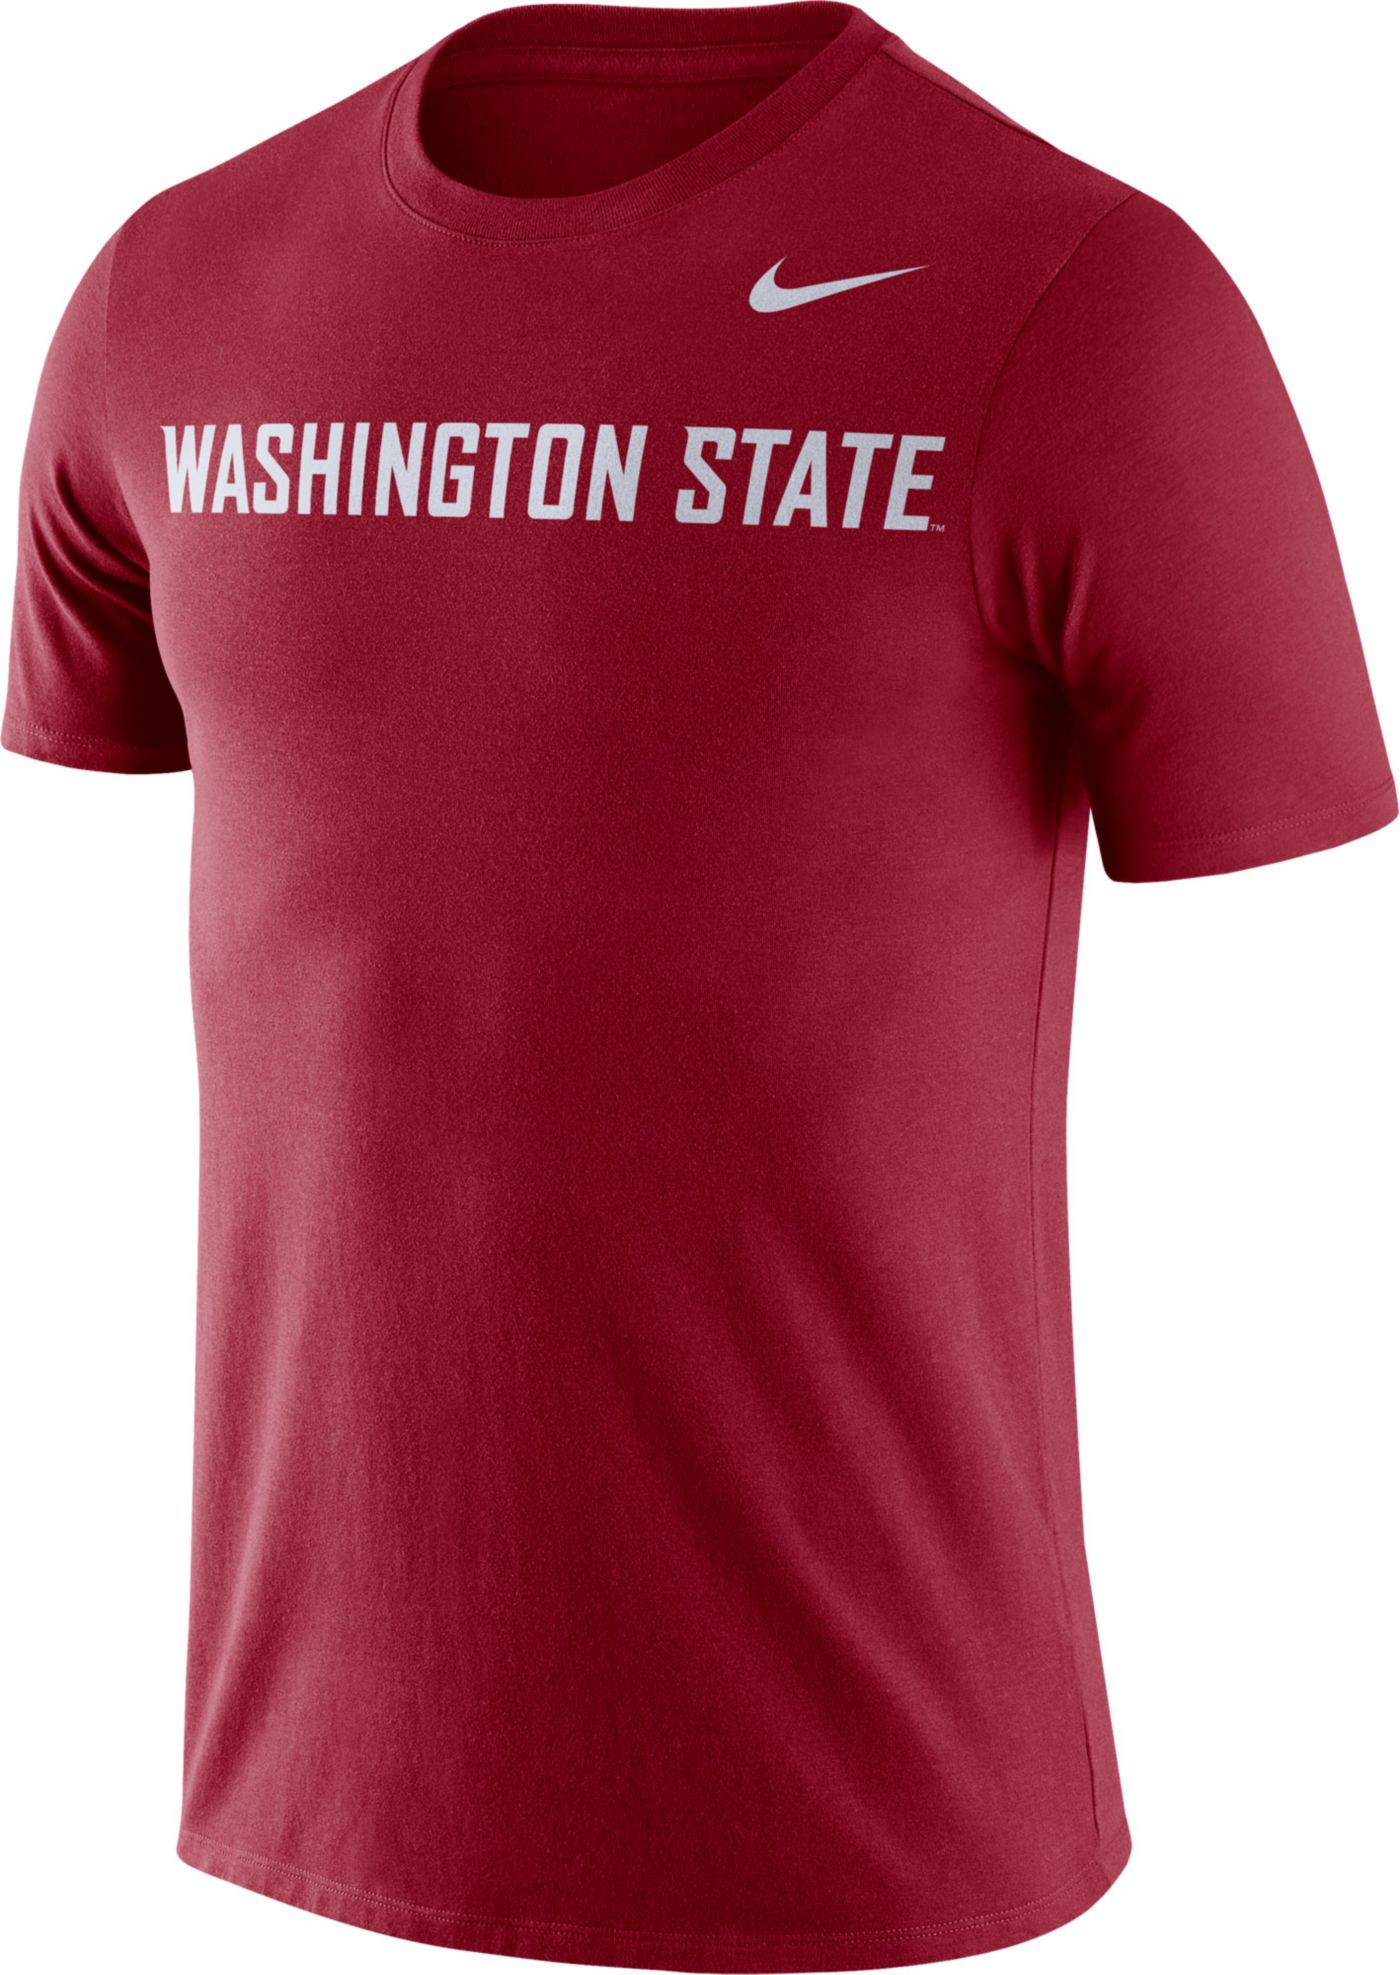 Nike Men's Washington State Cougars Crimson Dri-FIT Cotton Word T-Shirt